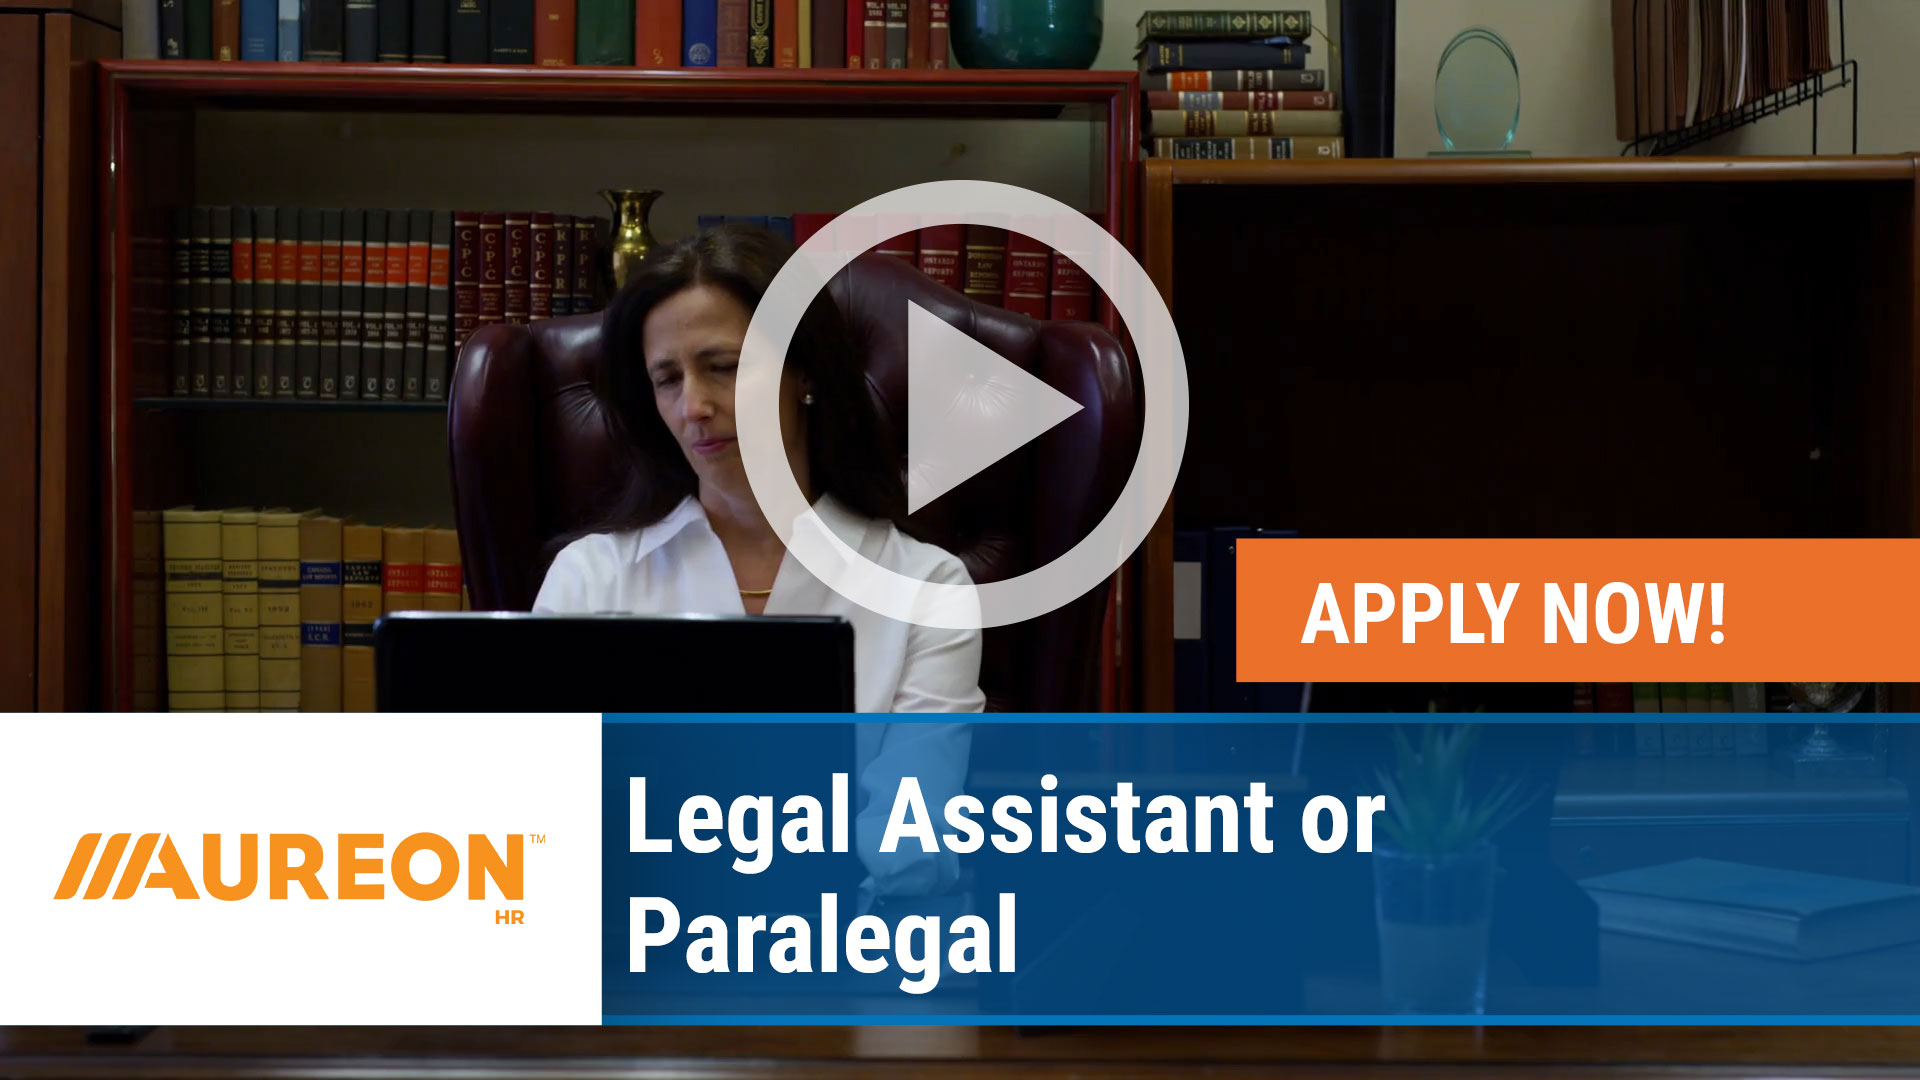 Watch our careers video for available job opening Legal Assistant or Paralegal in Des Moines,  Iowa